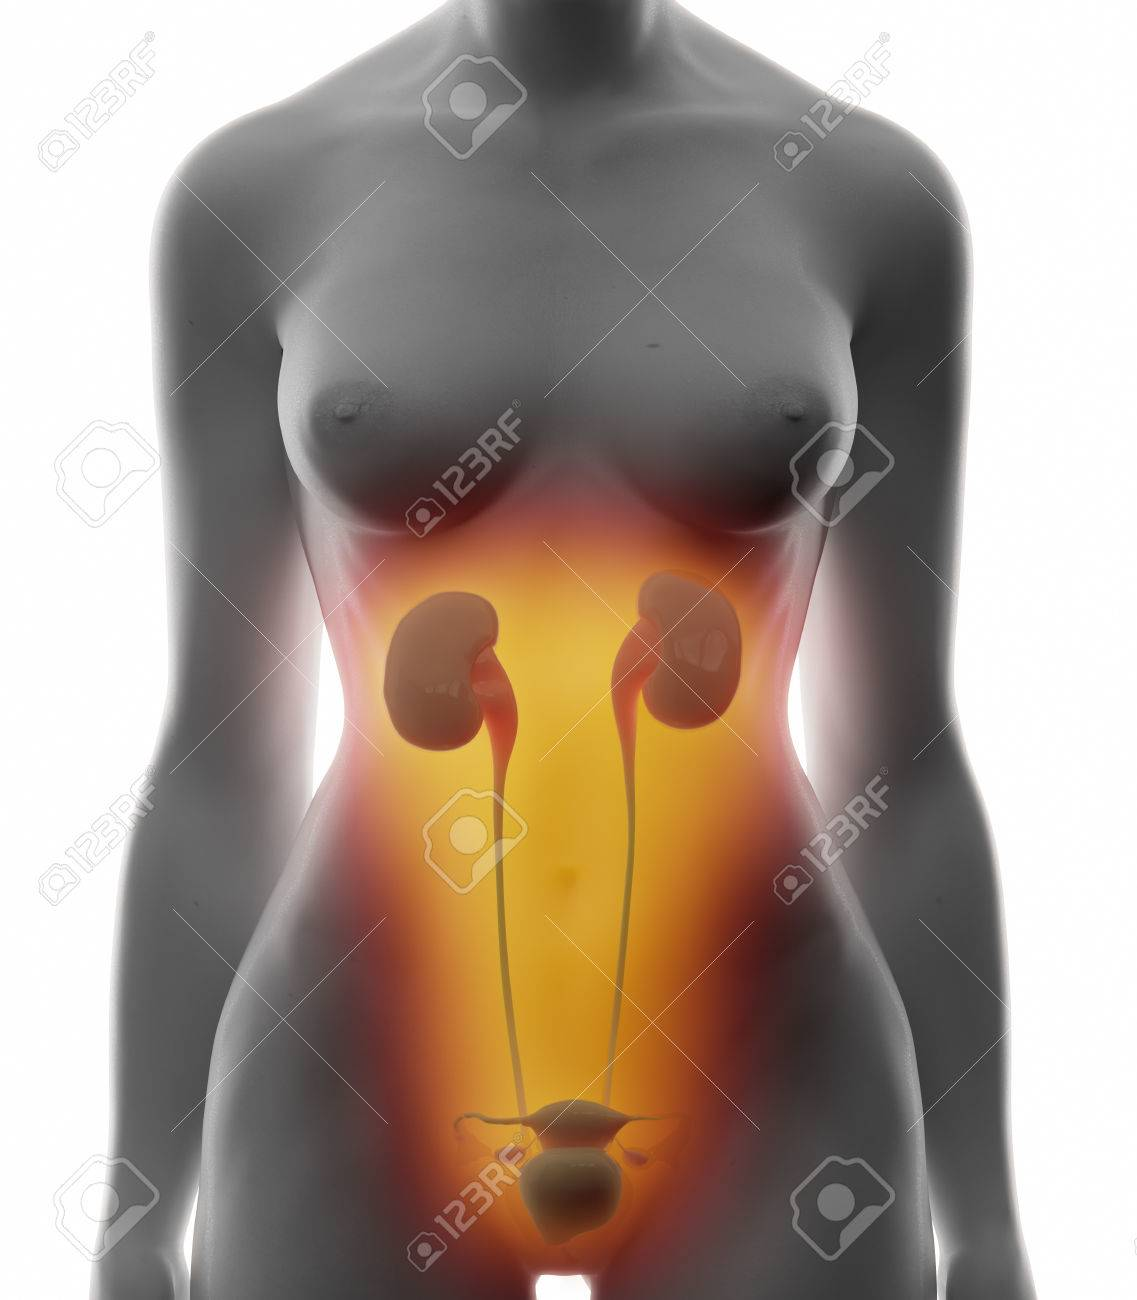 Urinary System - Real View Female Anatomy Concept Stock Photo ...